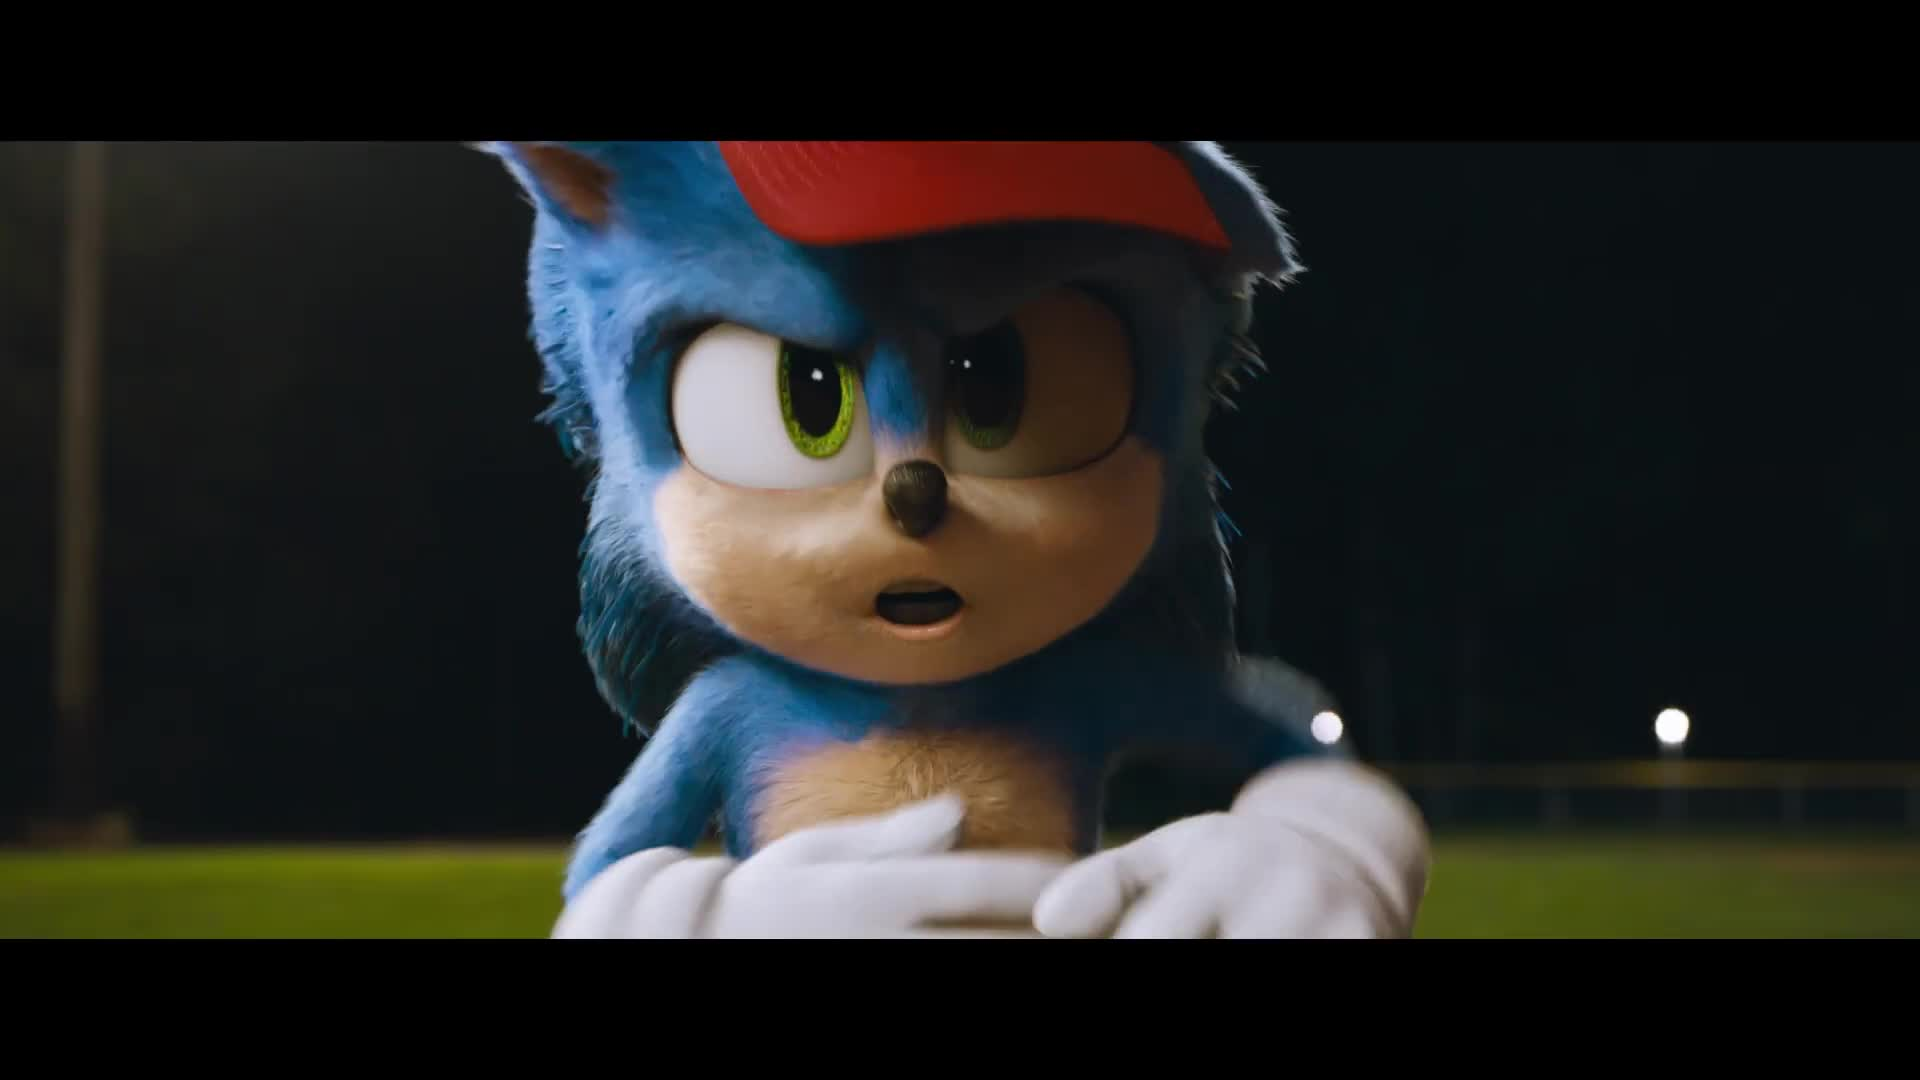 Sonic The Hedgehog - Official Trailer #2 [HD] screen capture